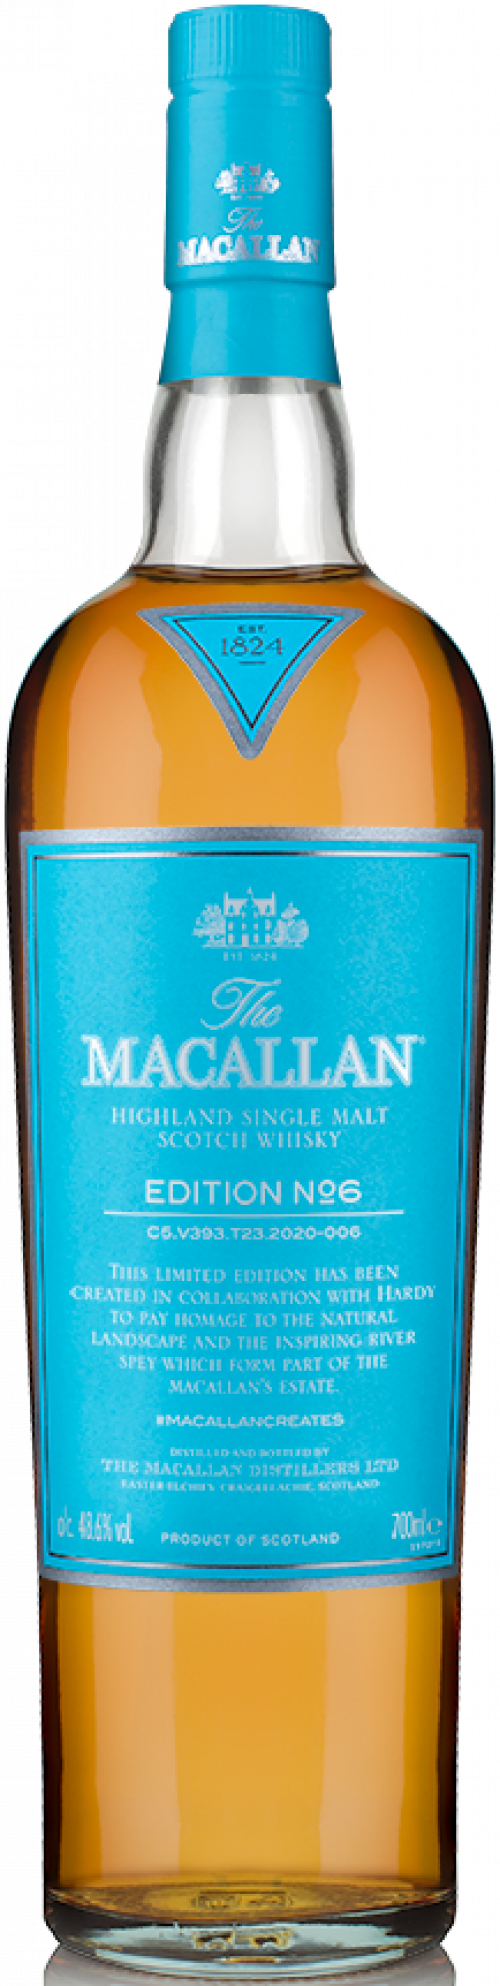 Macallan Limited Edition No. 6 Single Malt Scotch Whisky 750ml